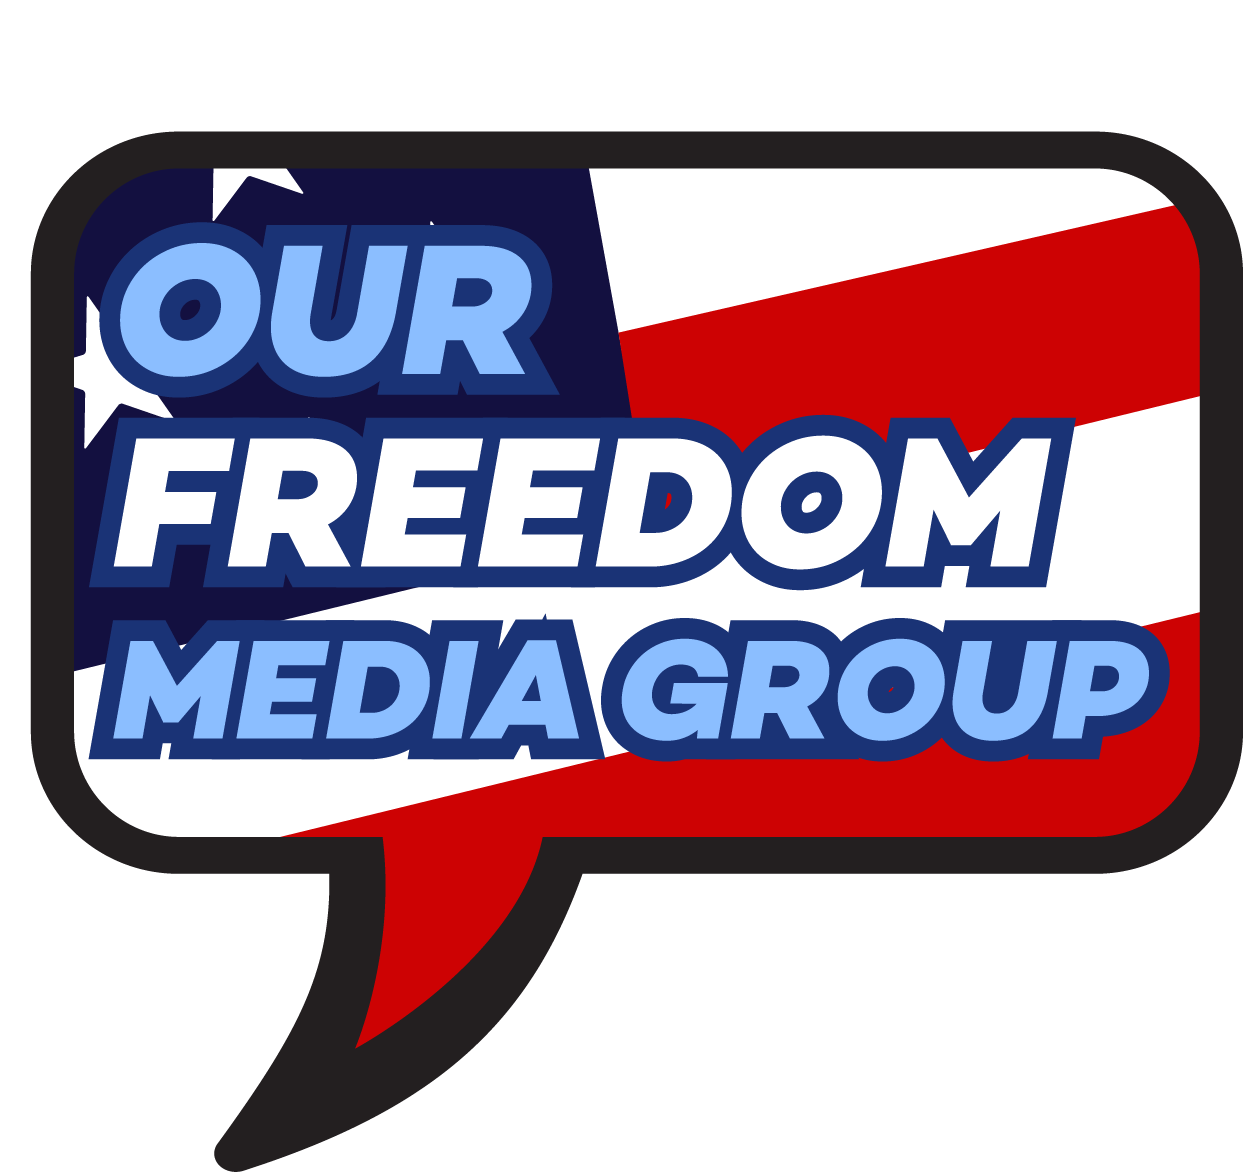 Our Freedom Media Group